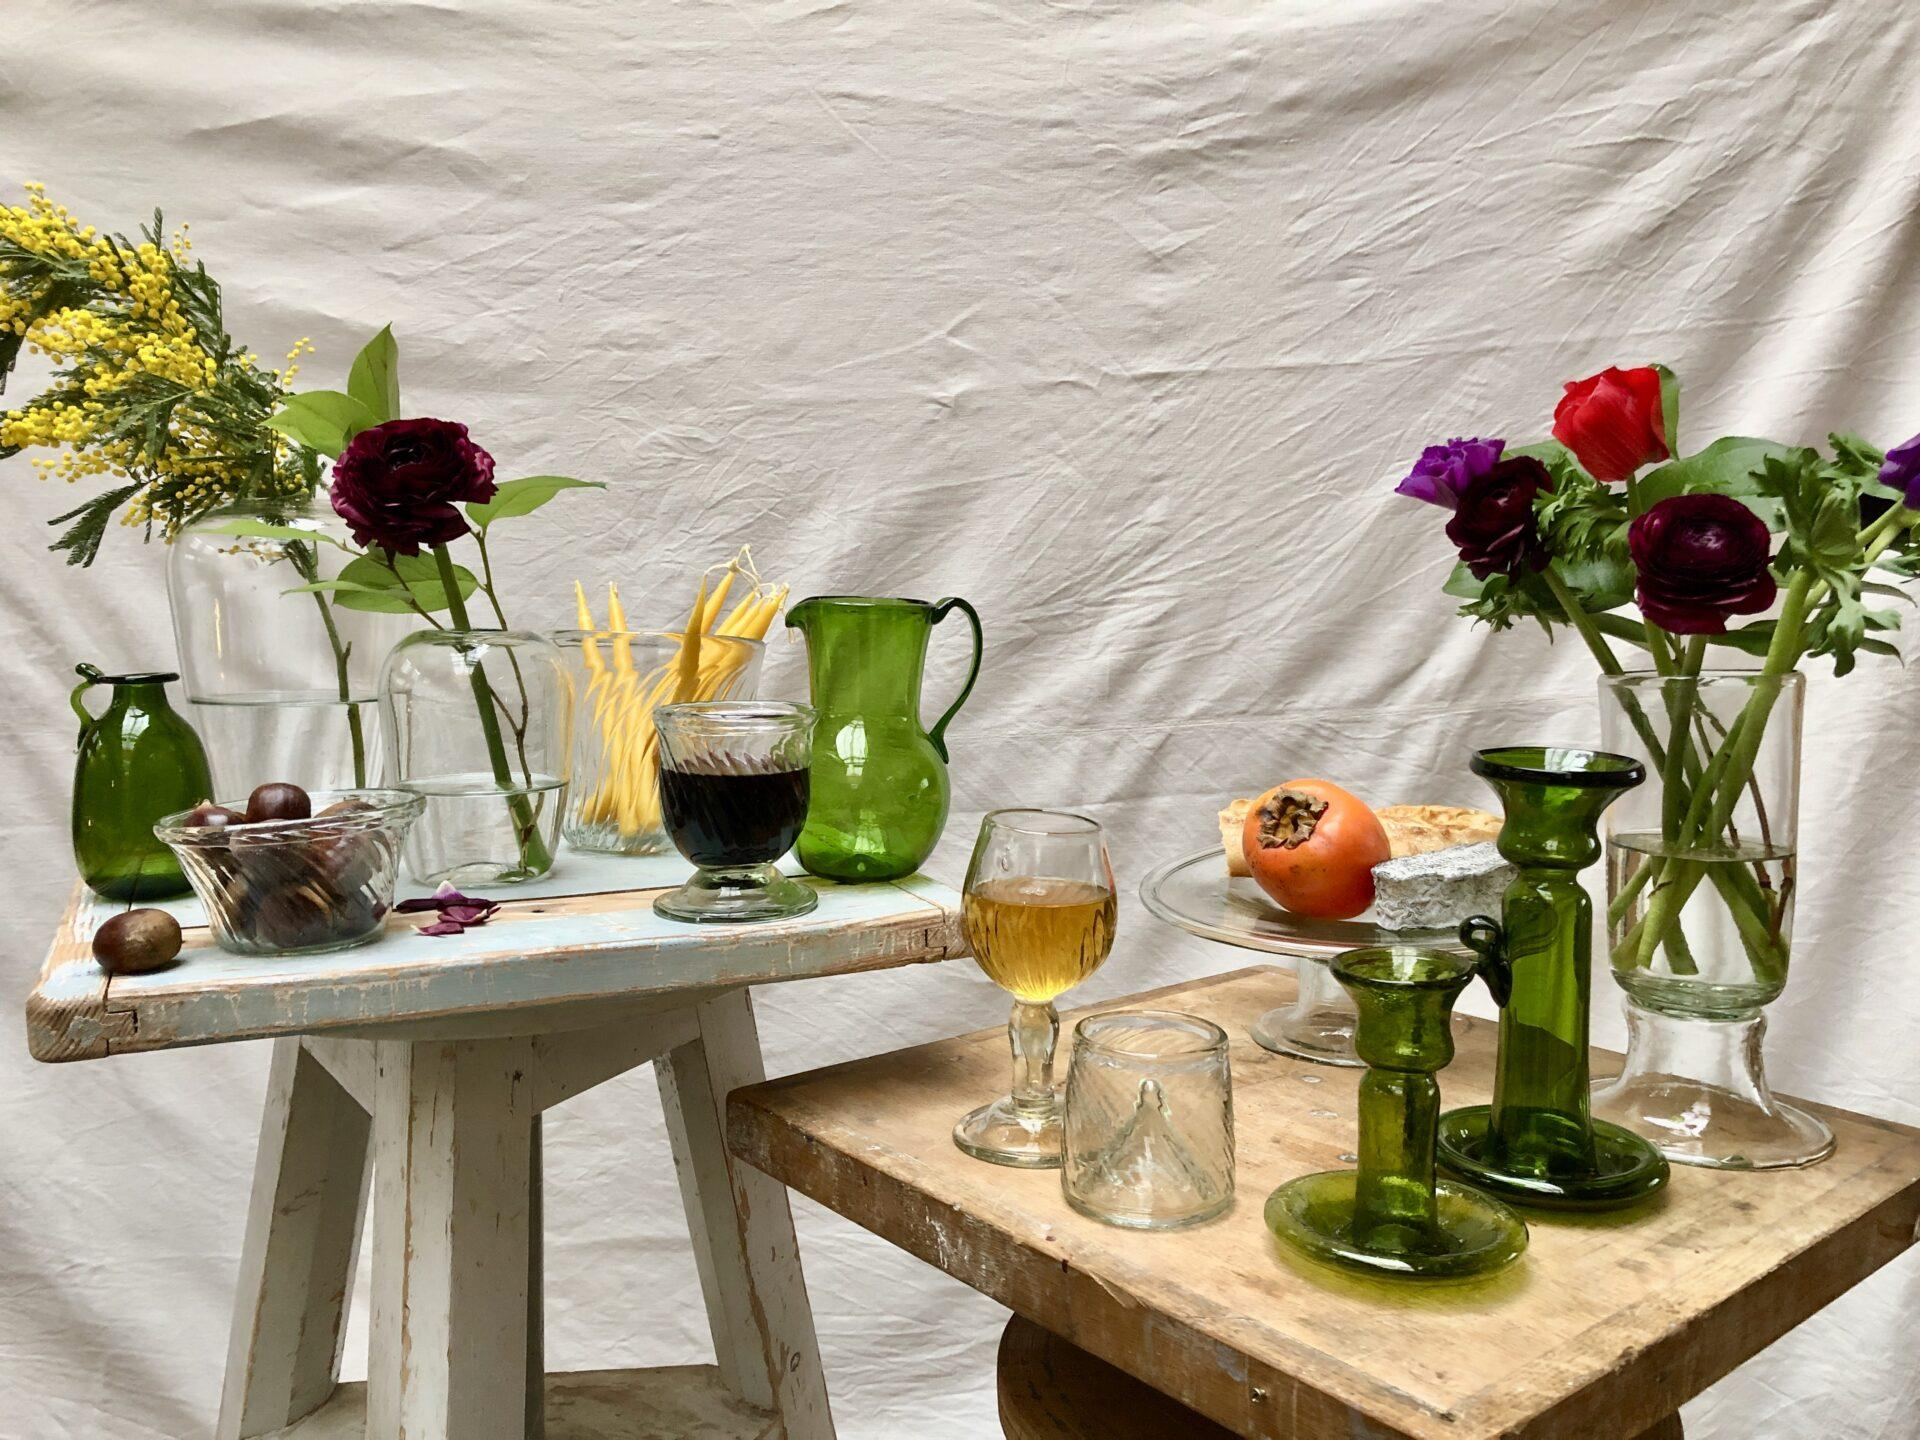 la-soufflerie-boheme-new-collection-hand-blown-handmade-recycled-glass-vases-glasses-carafes-bowls-candle-stick-holders